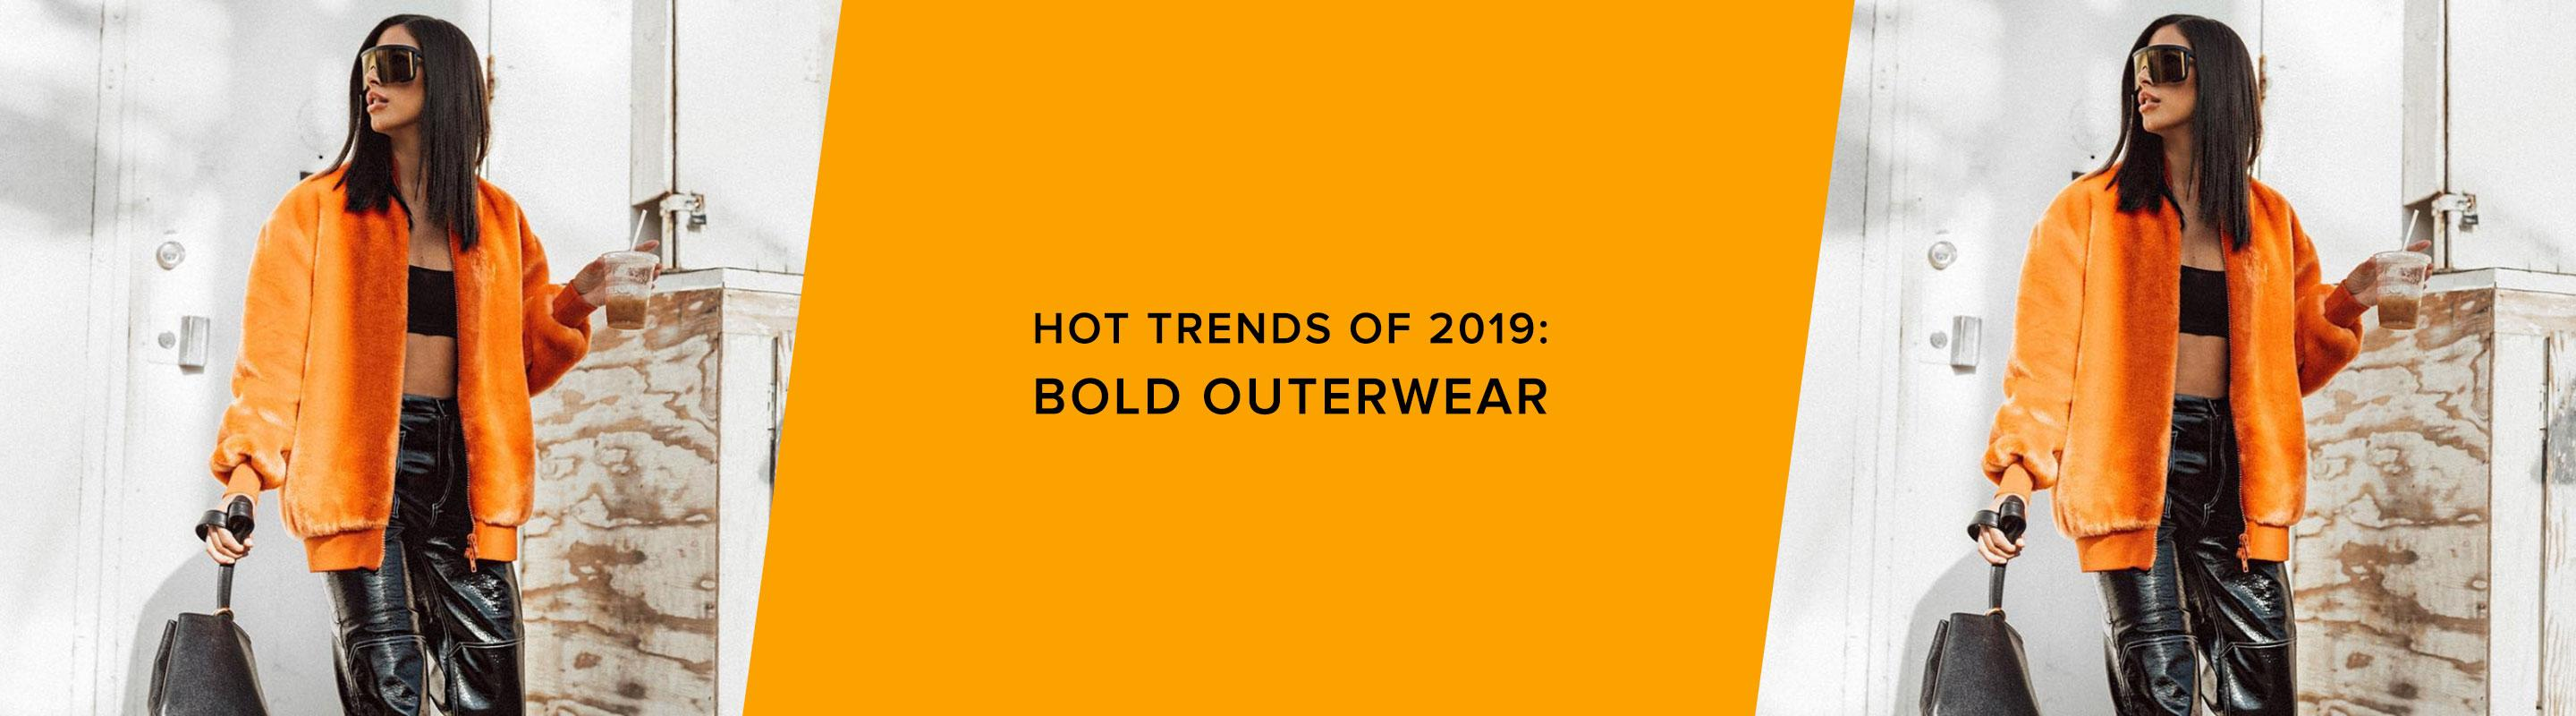 Hot Trends Of 2019: Bold Outerwear